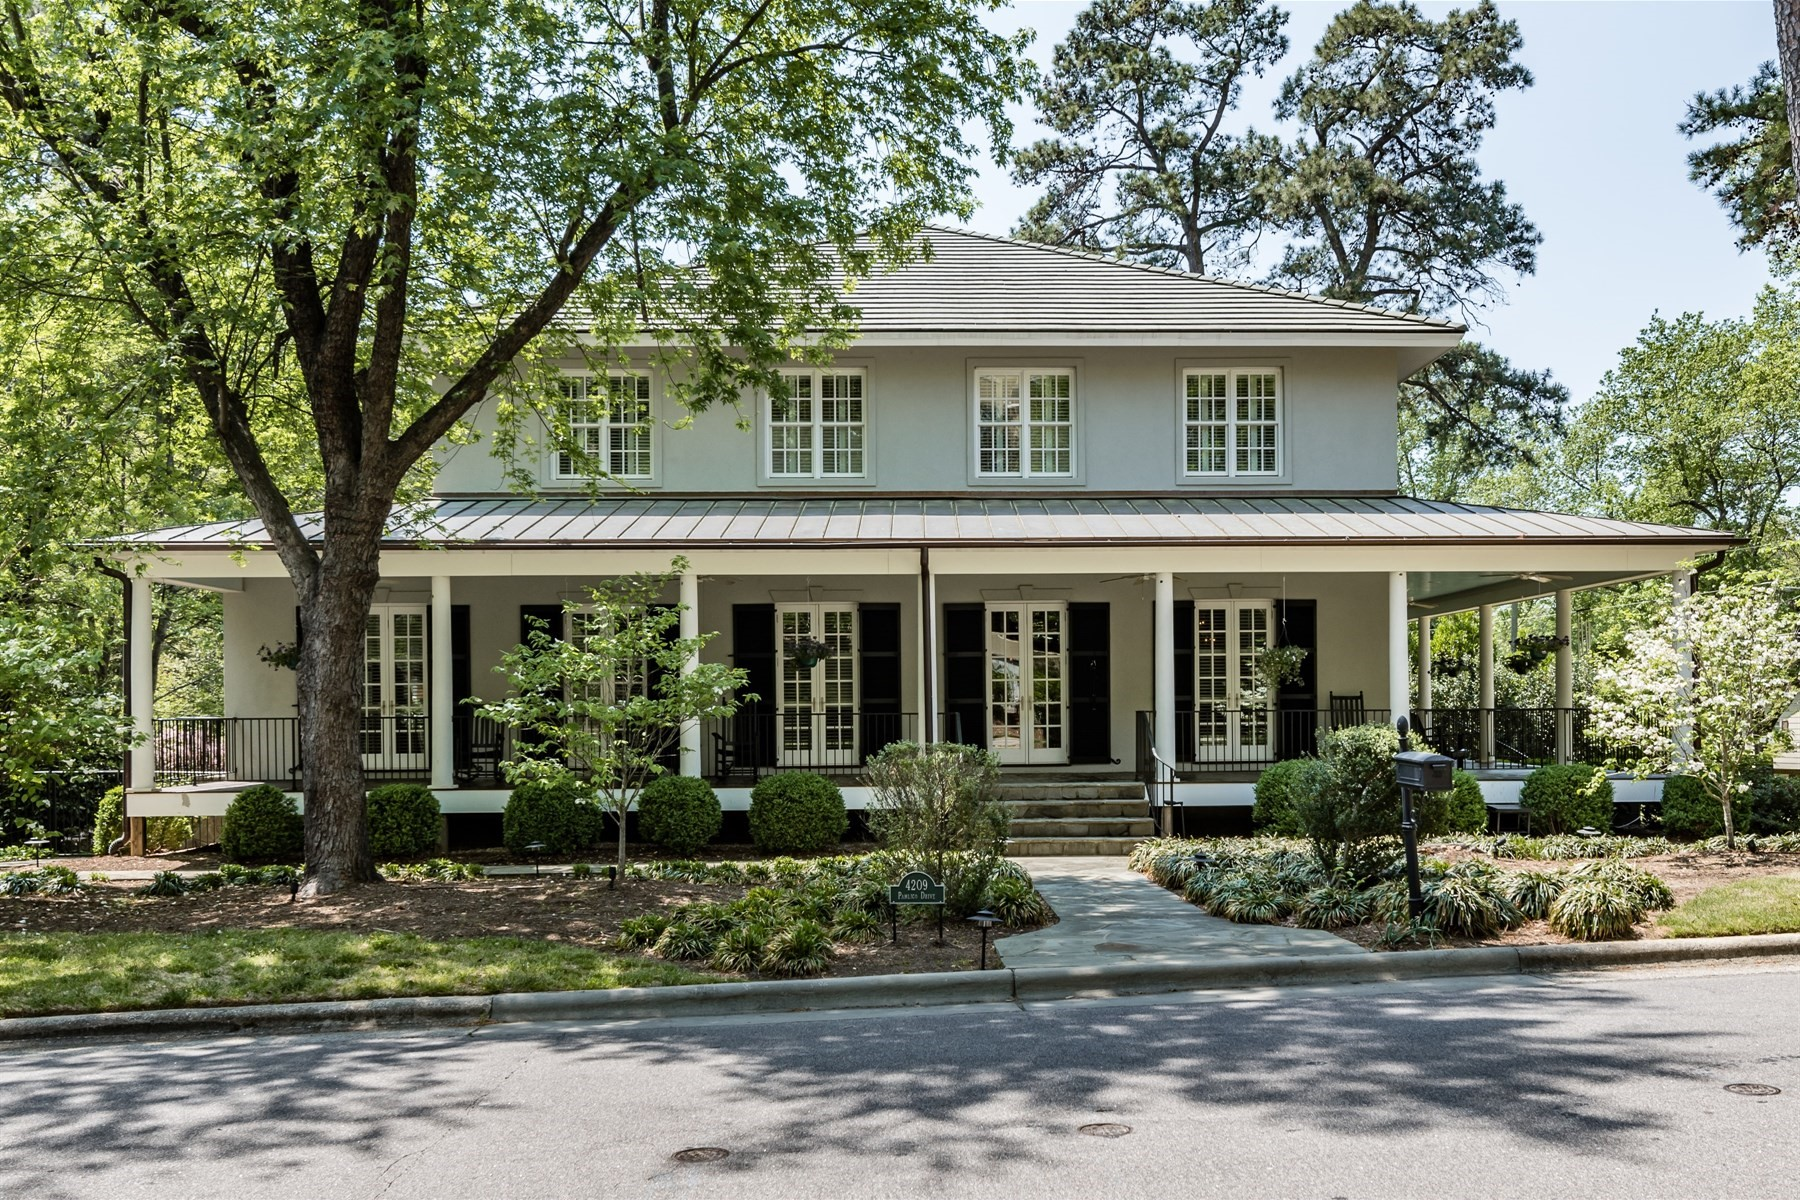 Single Family Home for Sale at North Hills Luxury Home 4209 Pamlico Drive Raleigh, North Carolina, 27609 United StatesIn/Around: Cary, Chapel Hill, Durham